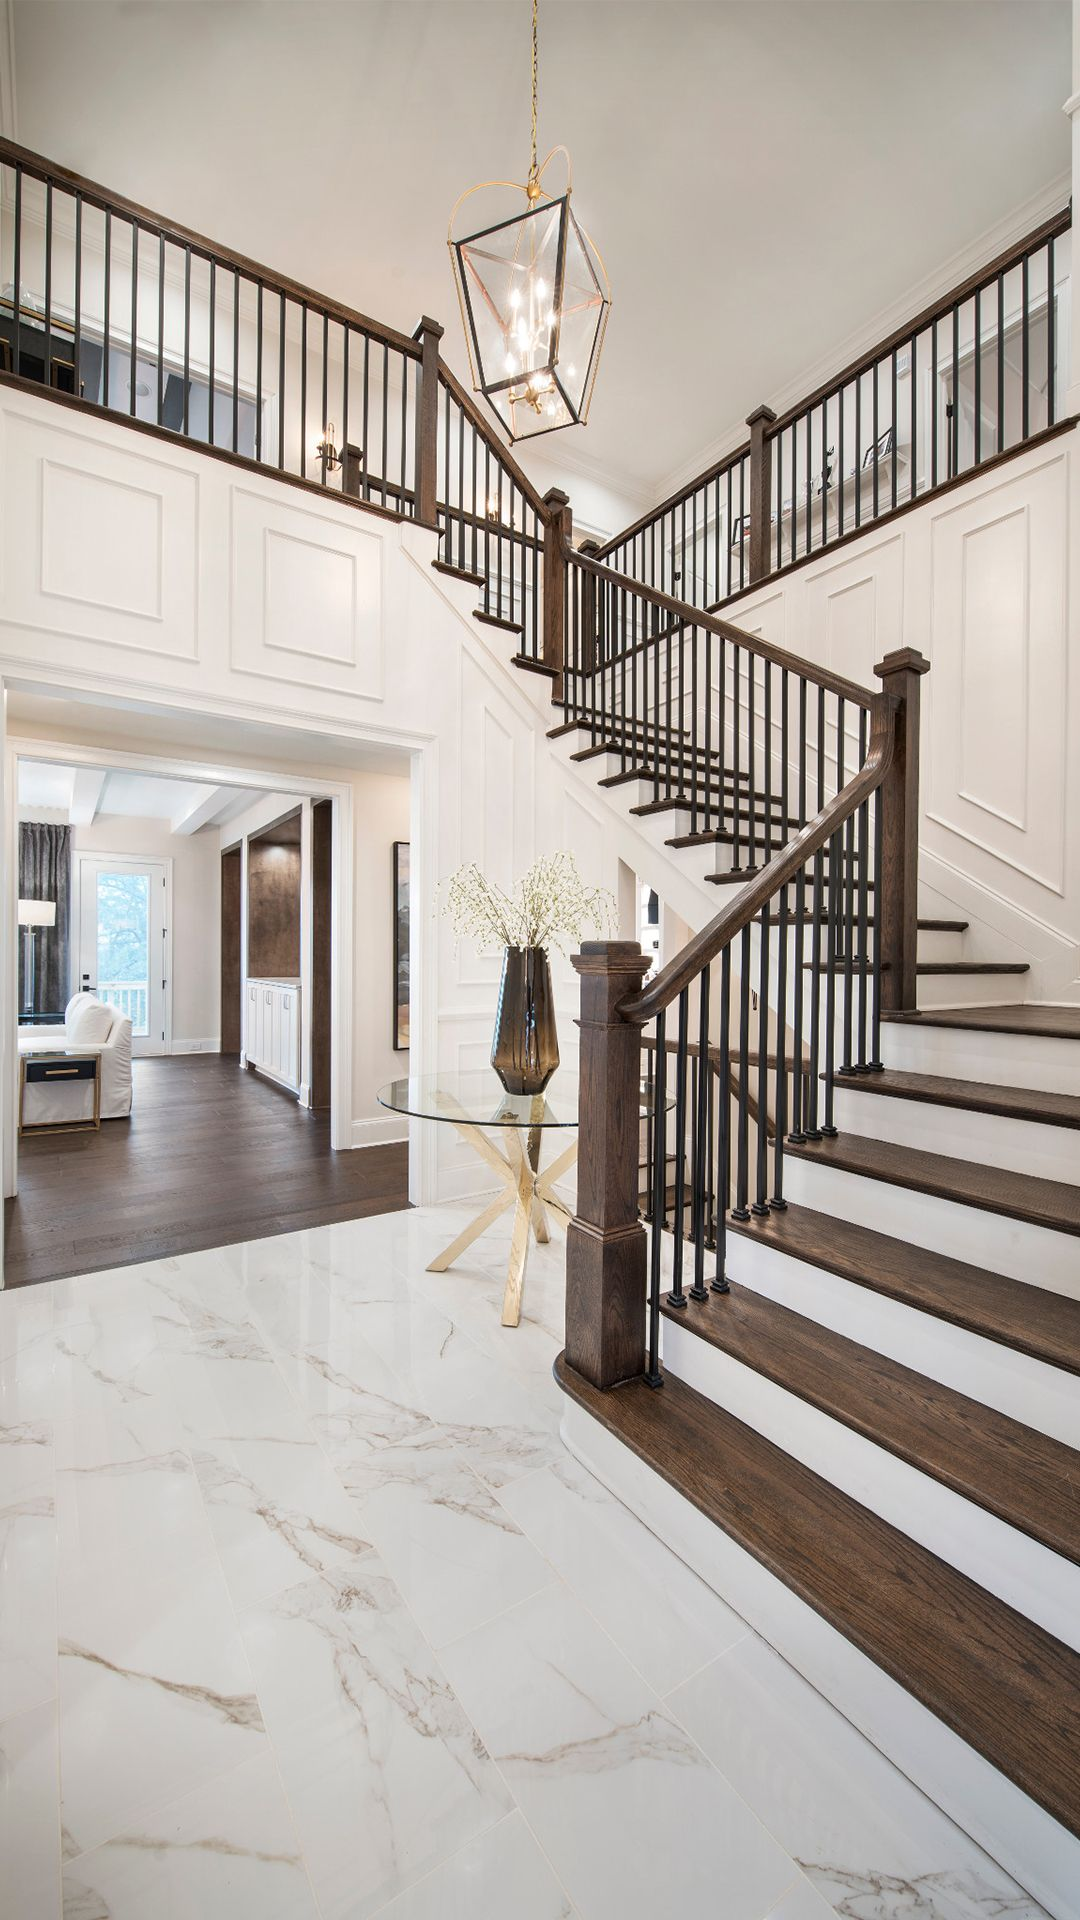 Interiorinspo House Entrance House Stairs Dream House